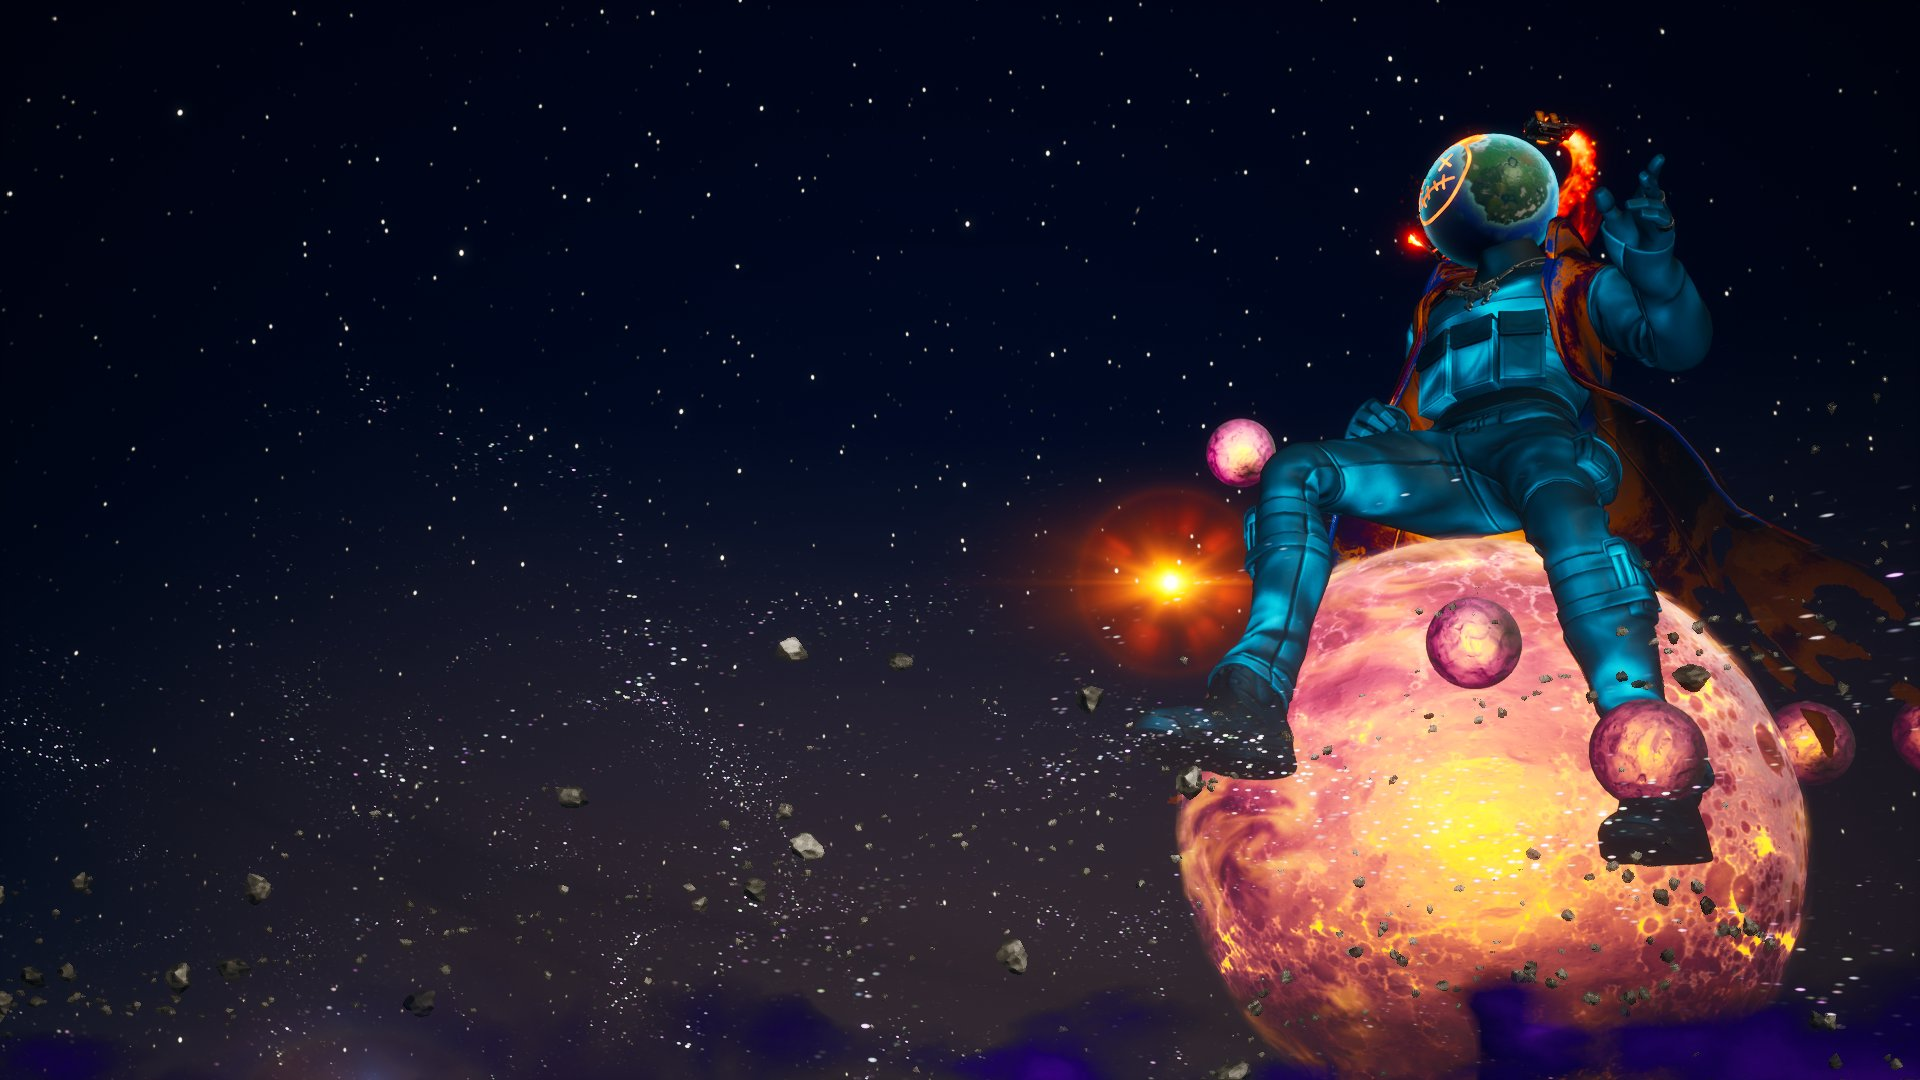 Fortnite S Astro Jack Hides A Secret All Details Hd Wallpapers Supertab Themes